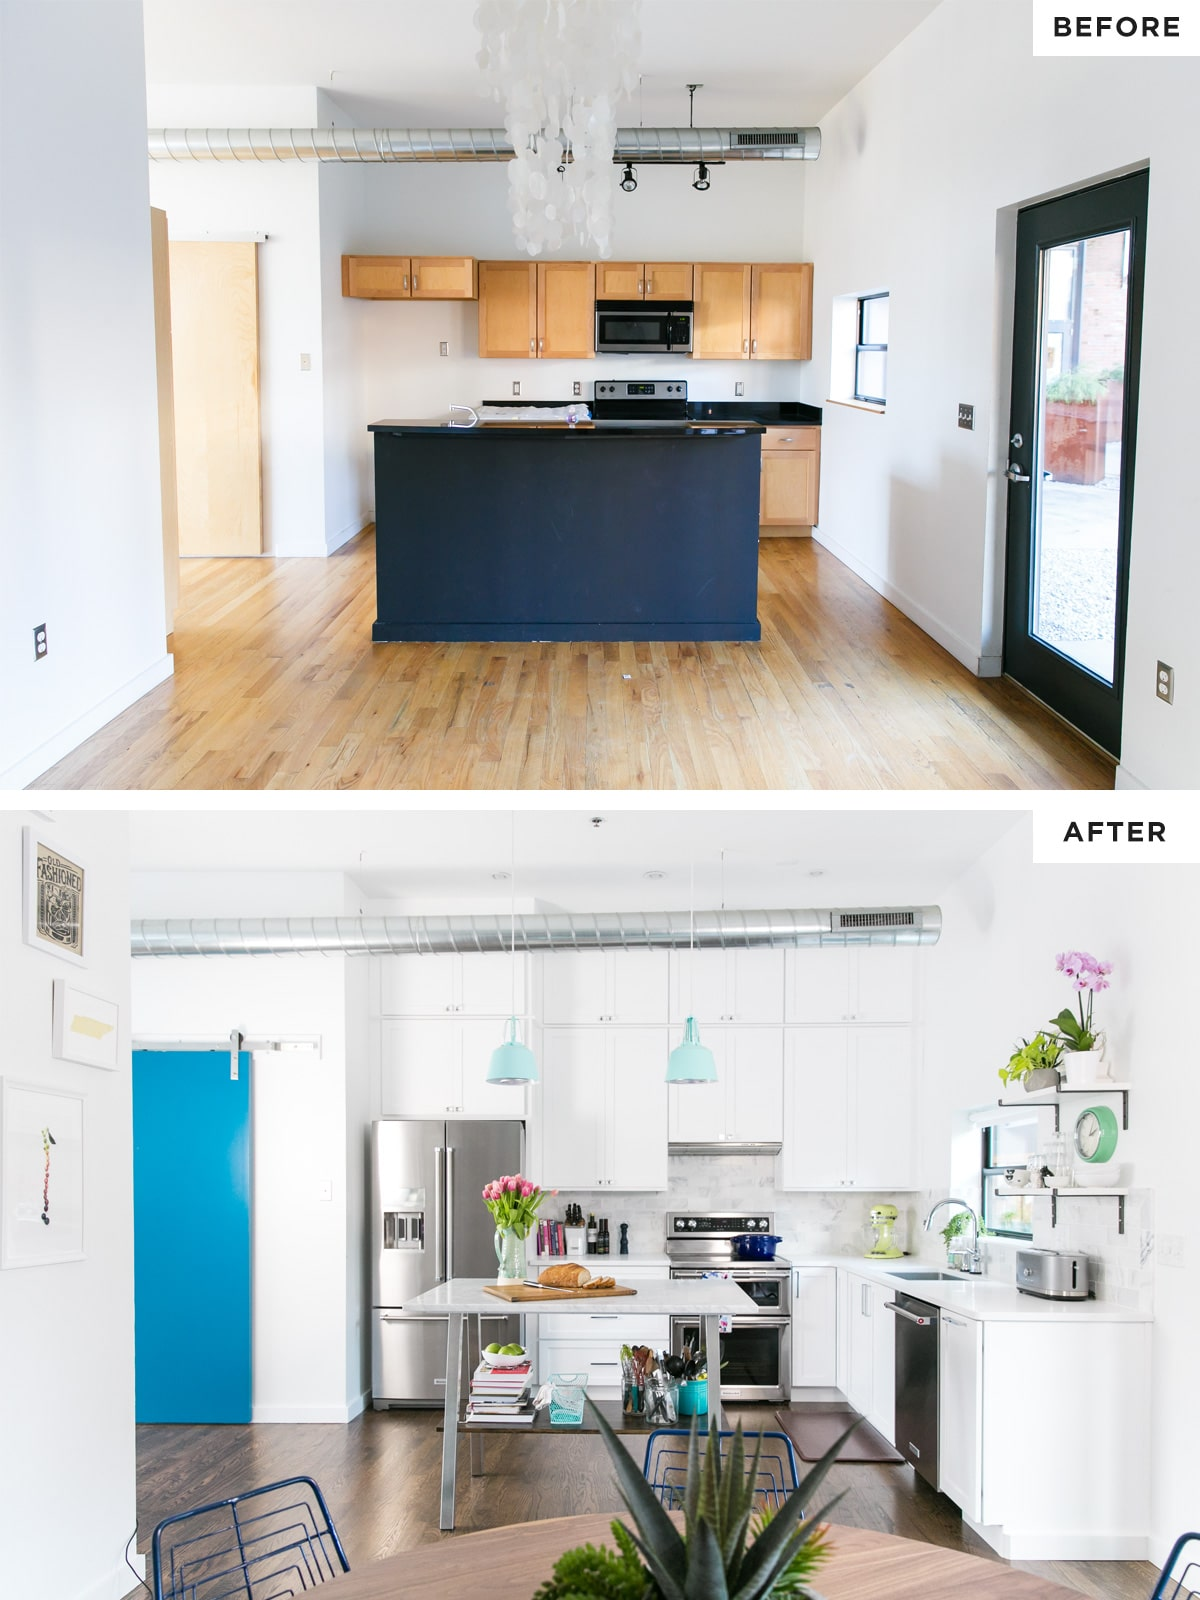 Final Reveal Kitchen Renovation Before & After